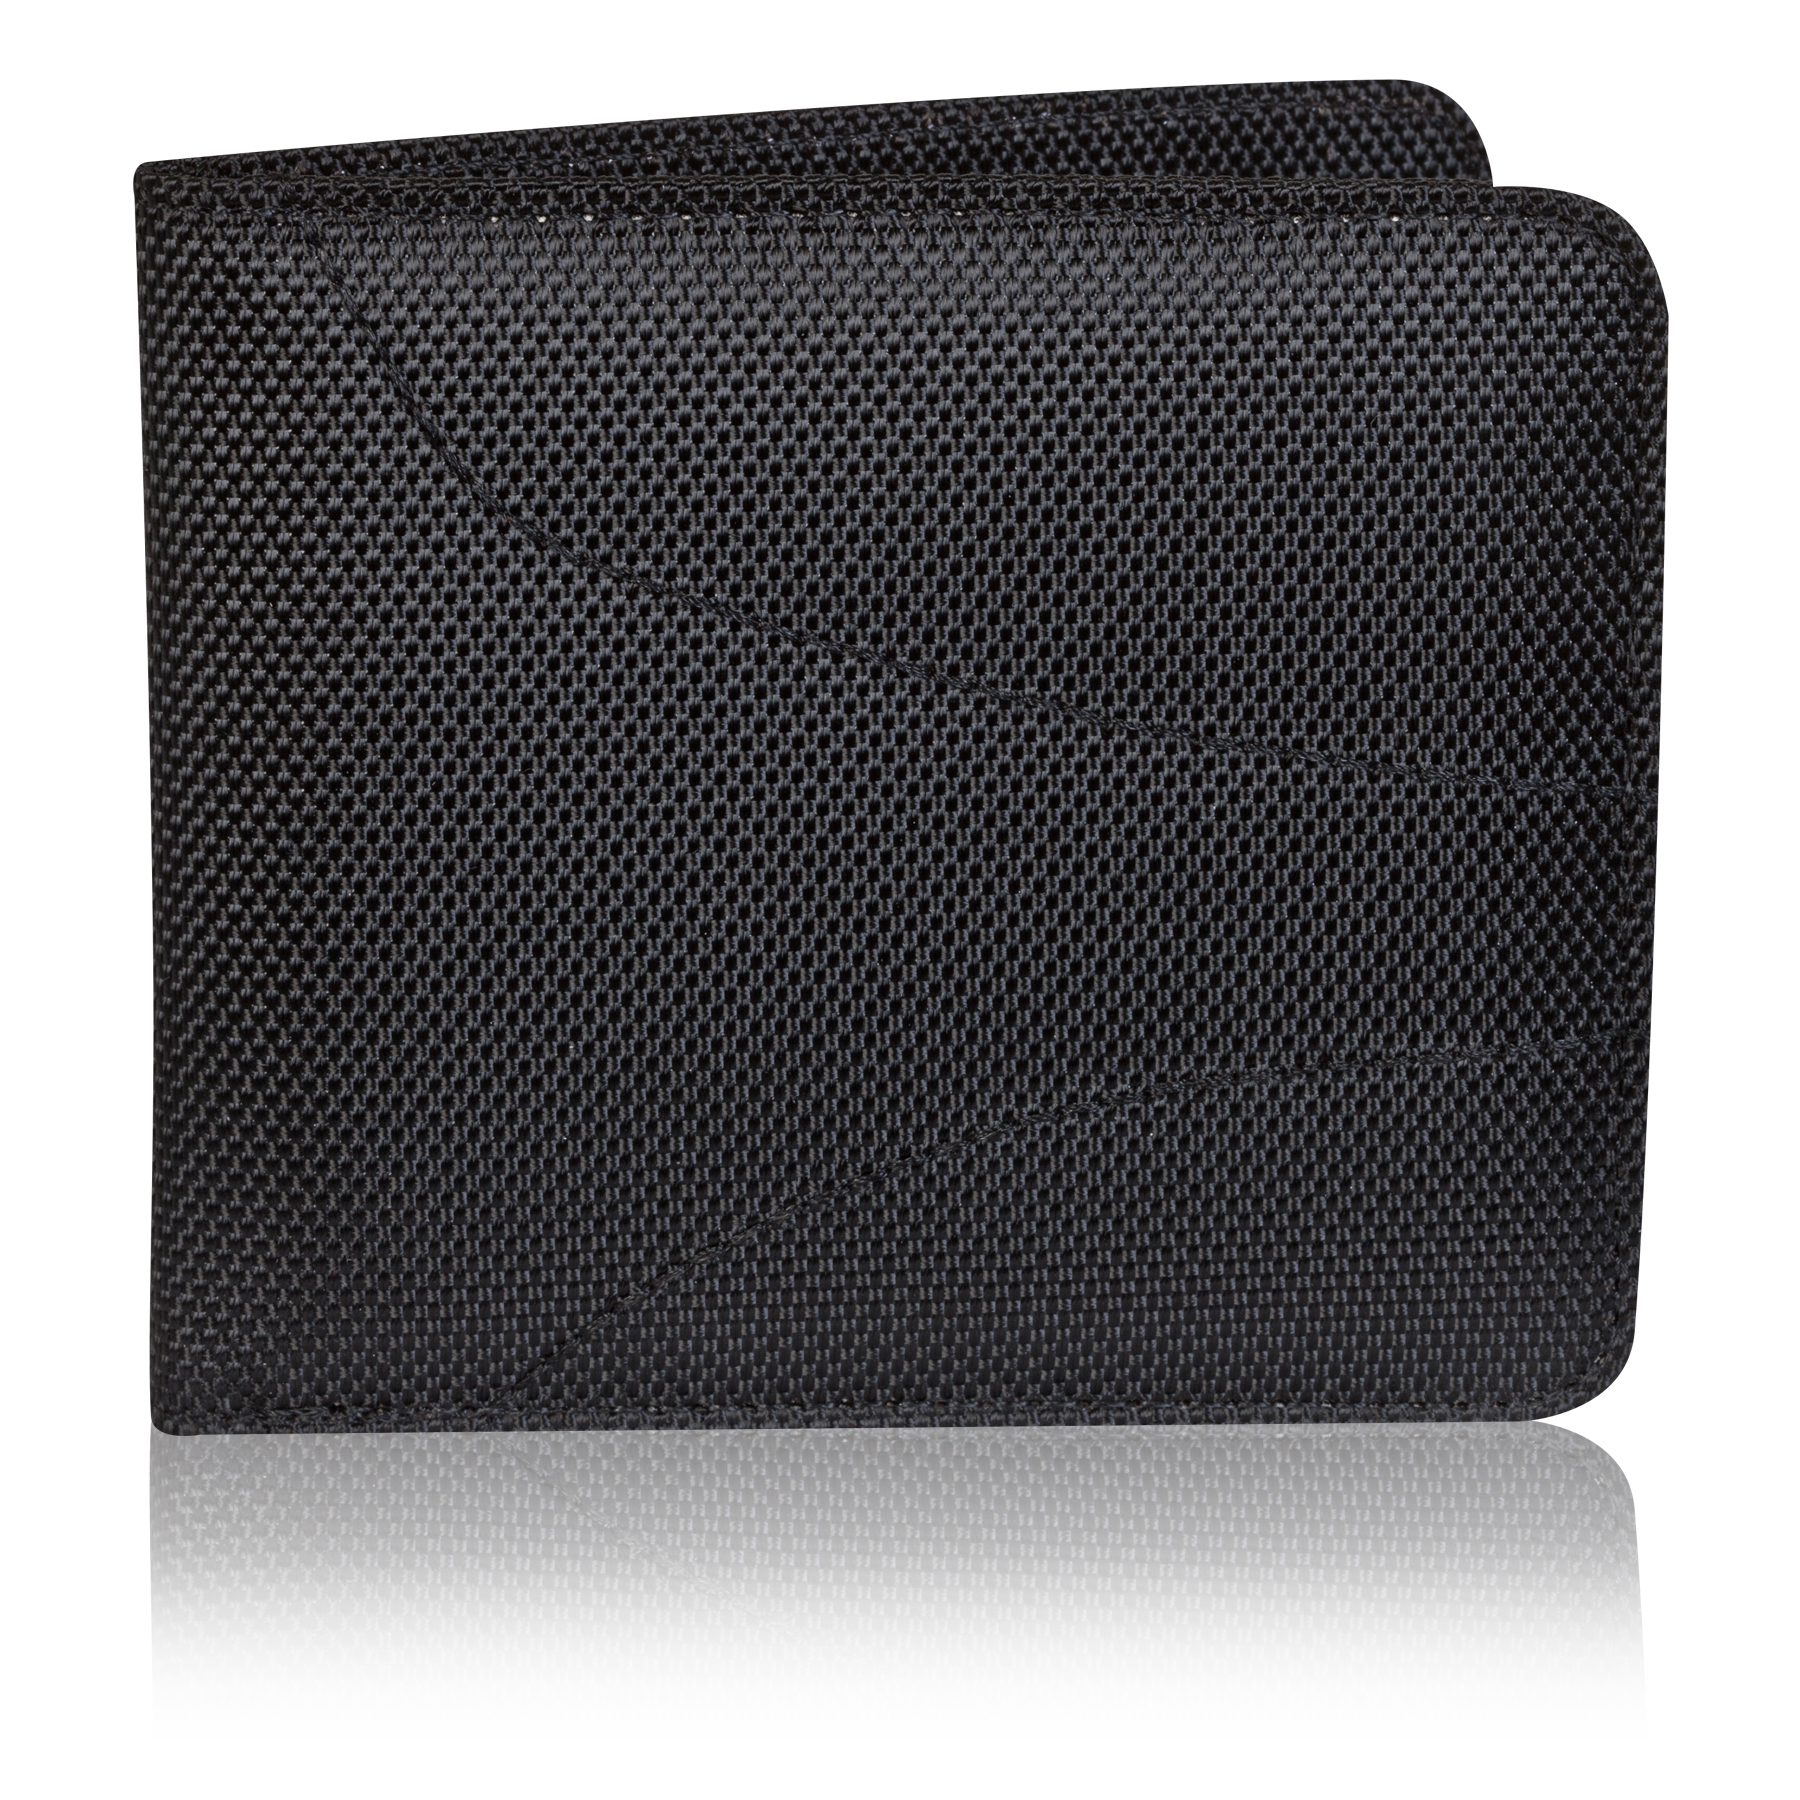 Purses & Wallets Cases & Bags Accessories Gifts for Men Gifts for Women Formula 1 Other McLaren Honda Team Wallet Black